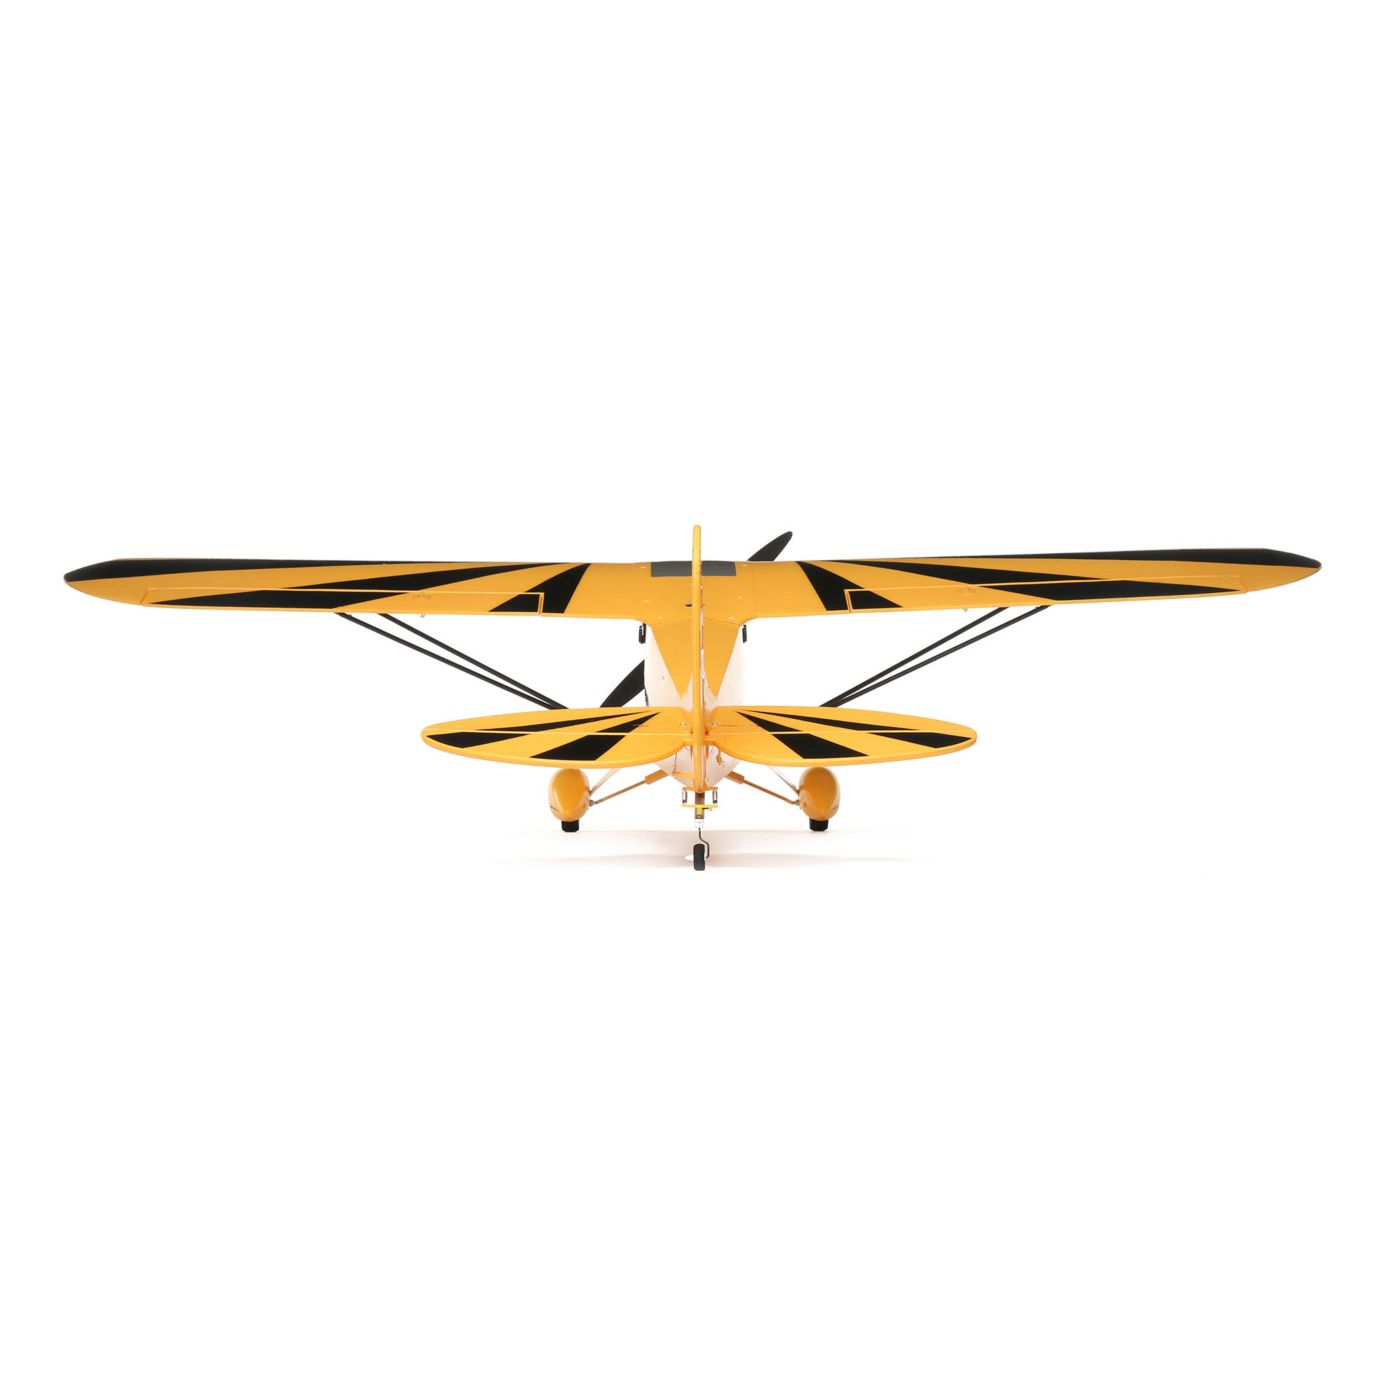 Clipped Wing Cub E-flite